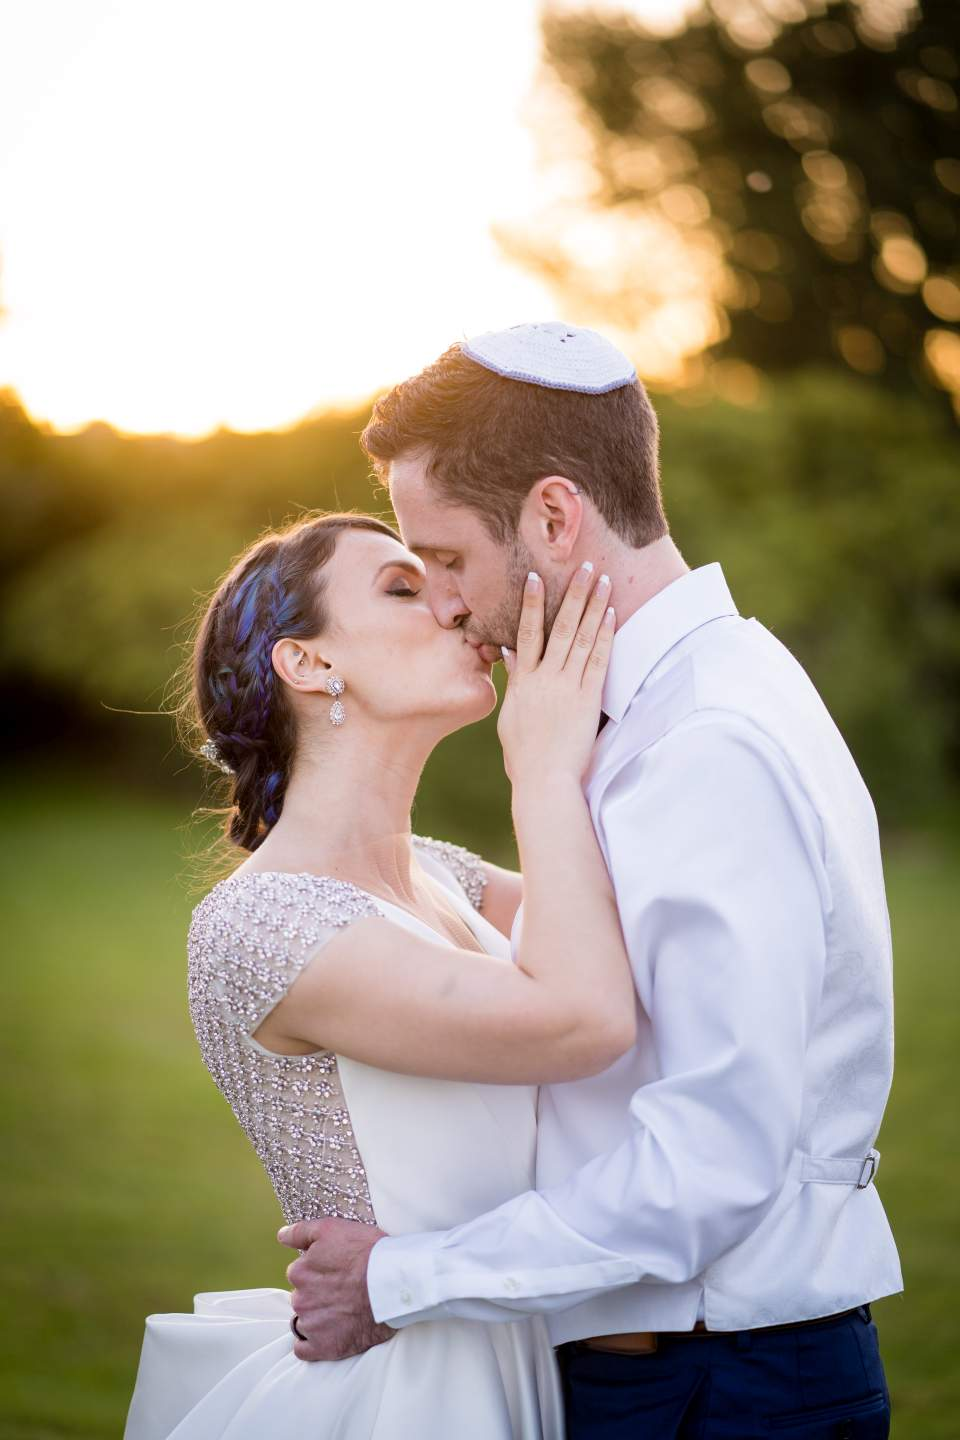 bride and groom kissing in sunset light spring wedding at center for urban horticulture